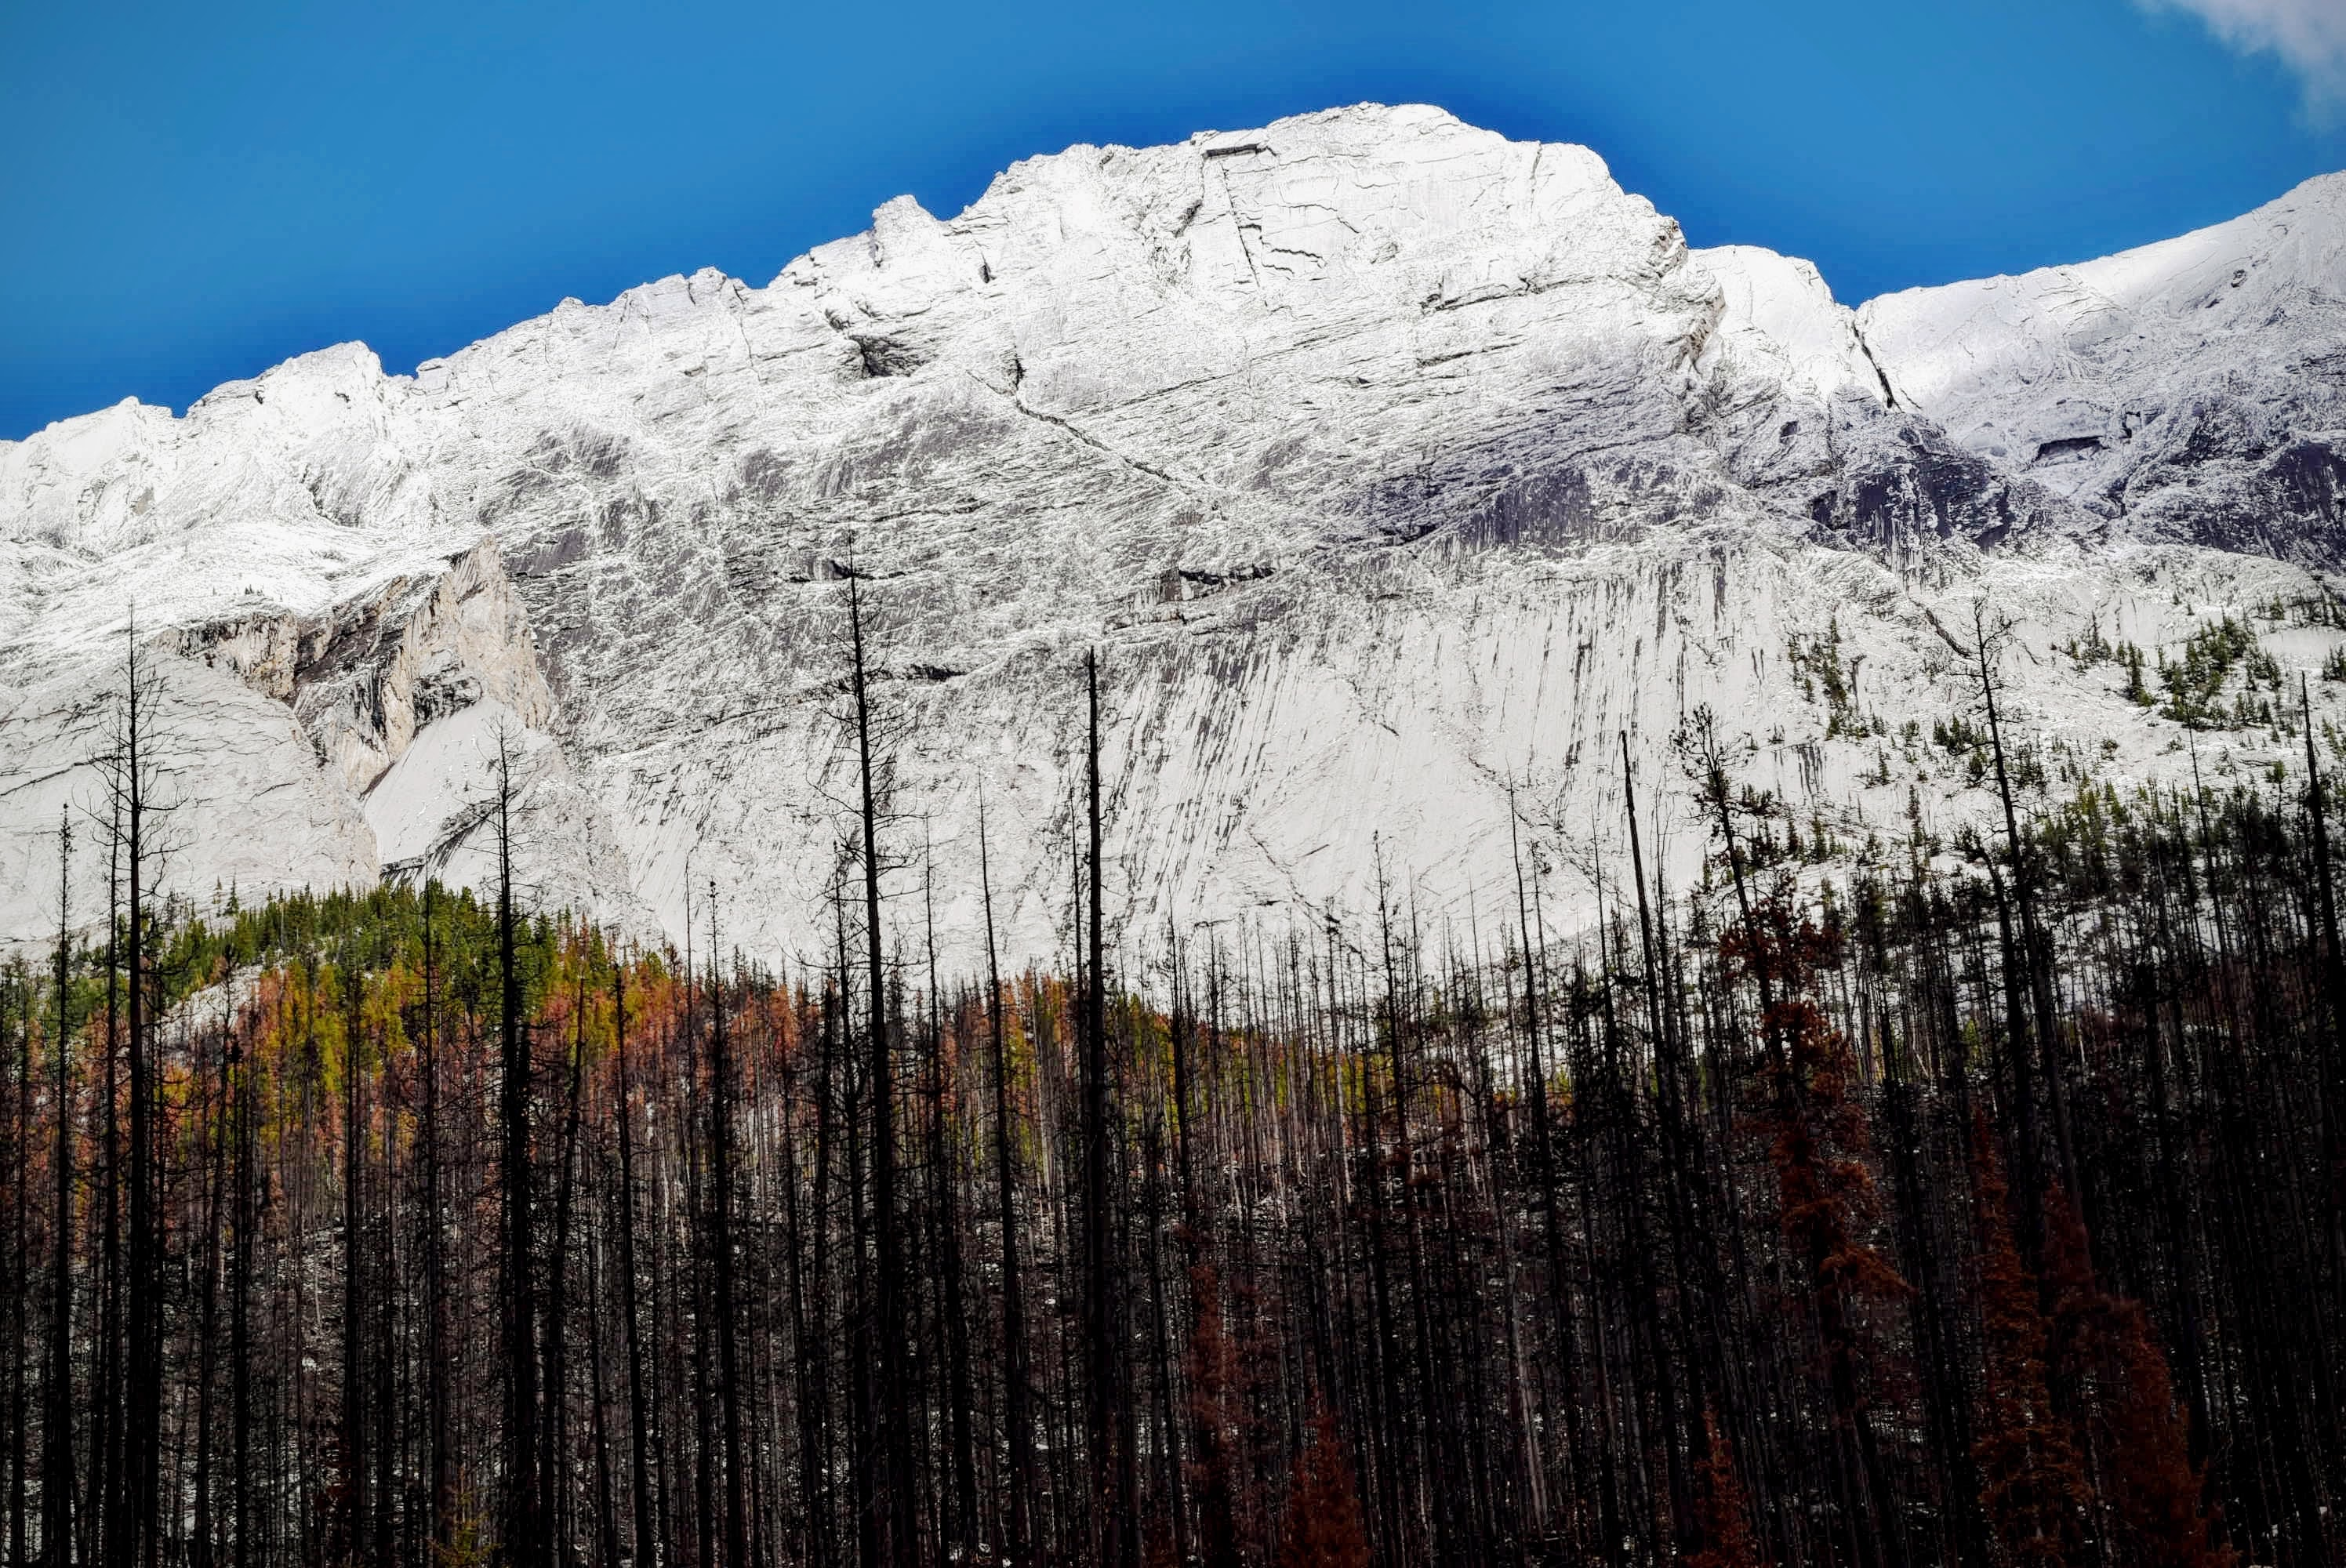 Bare trees near a steep white rock face in Jasper National Park